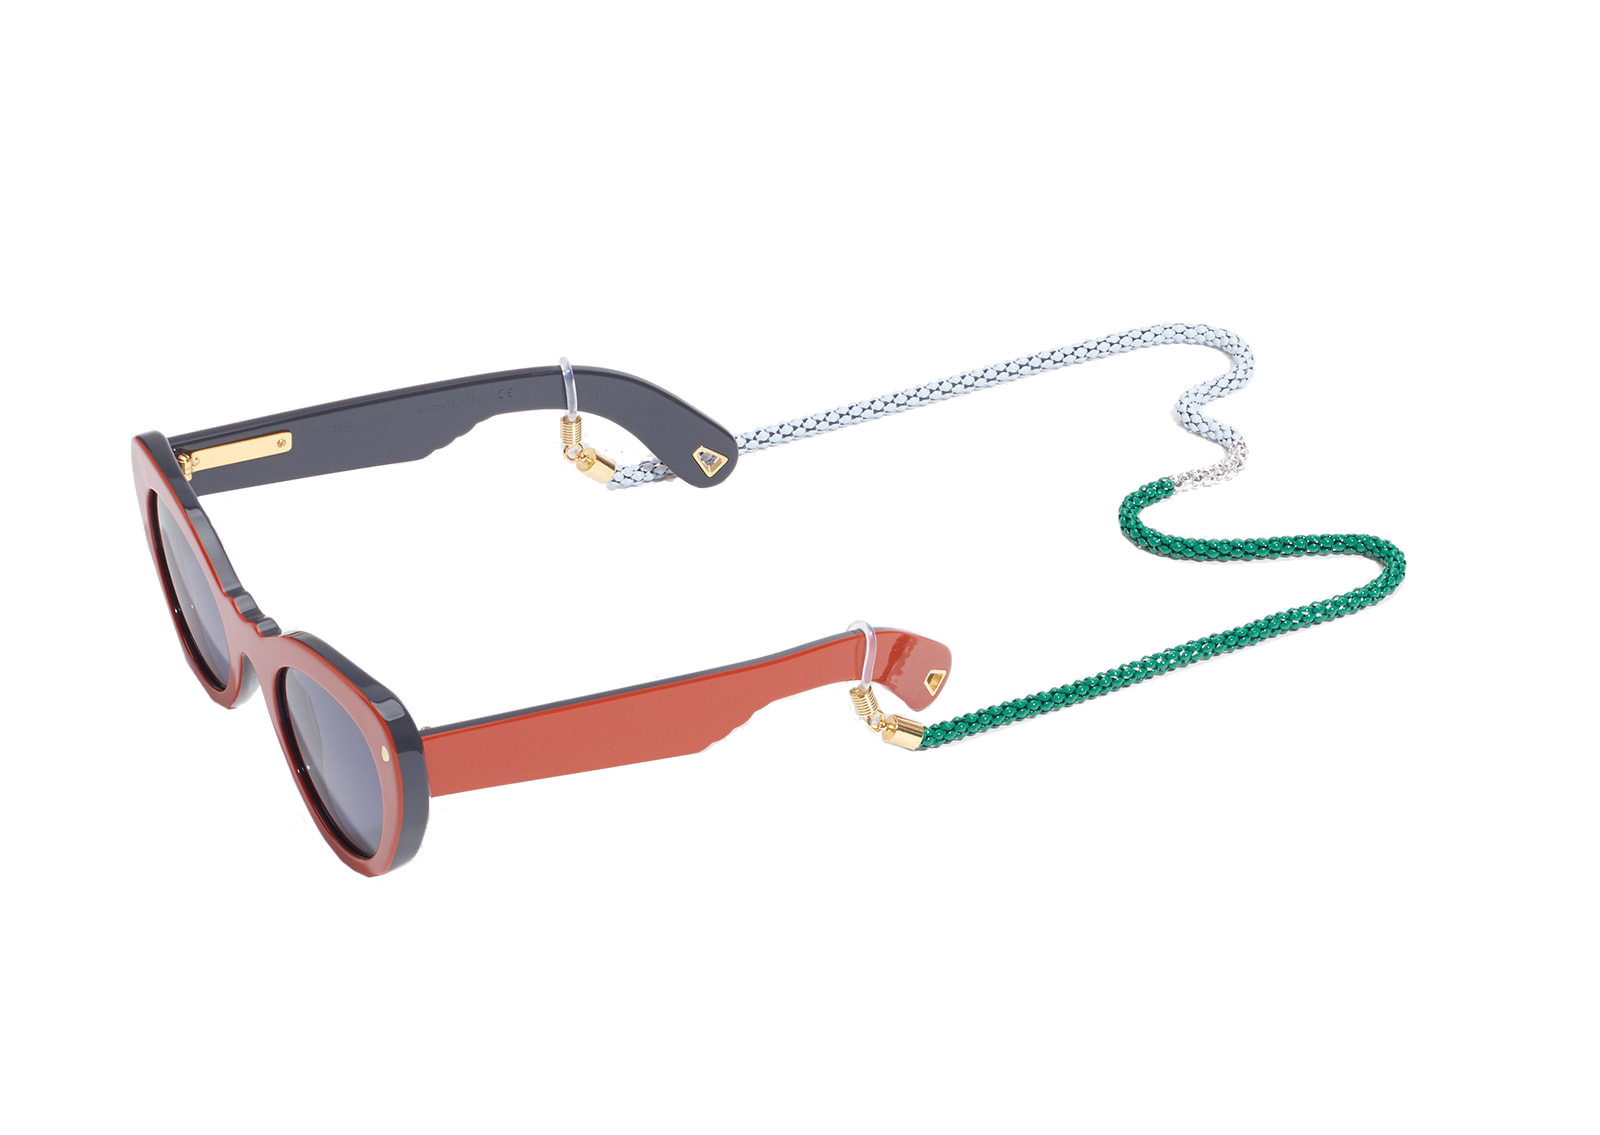 Finola thinks that eyewear chains are not just for old ladies and librarians! Take a look at these funky sunnies with matching chain from  Lucy Folk , the ultimate summery eyewear accessory.